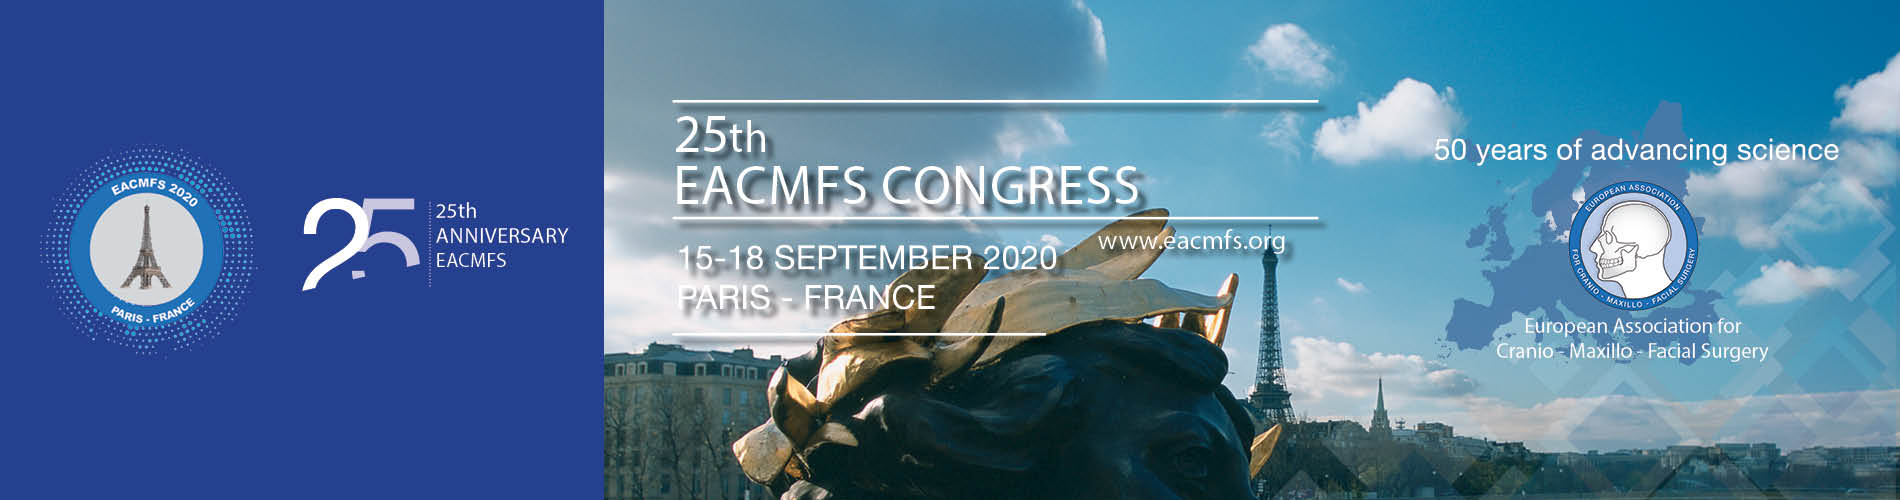 25th EACMFS Congress